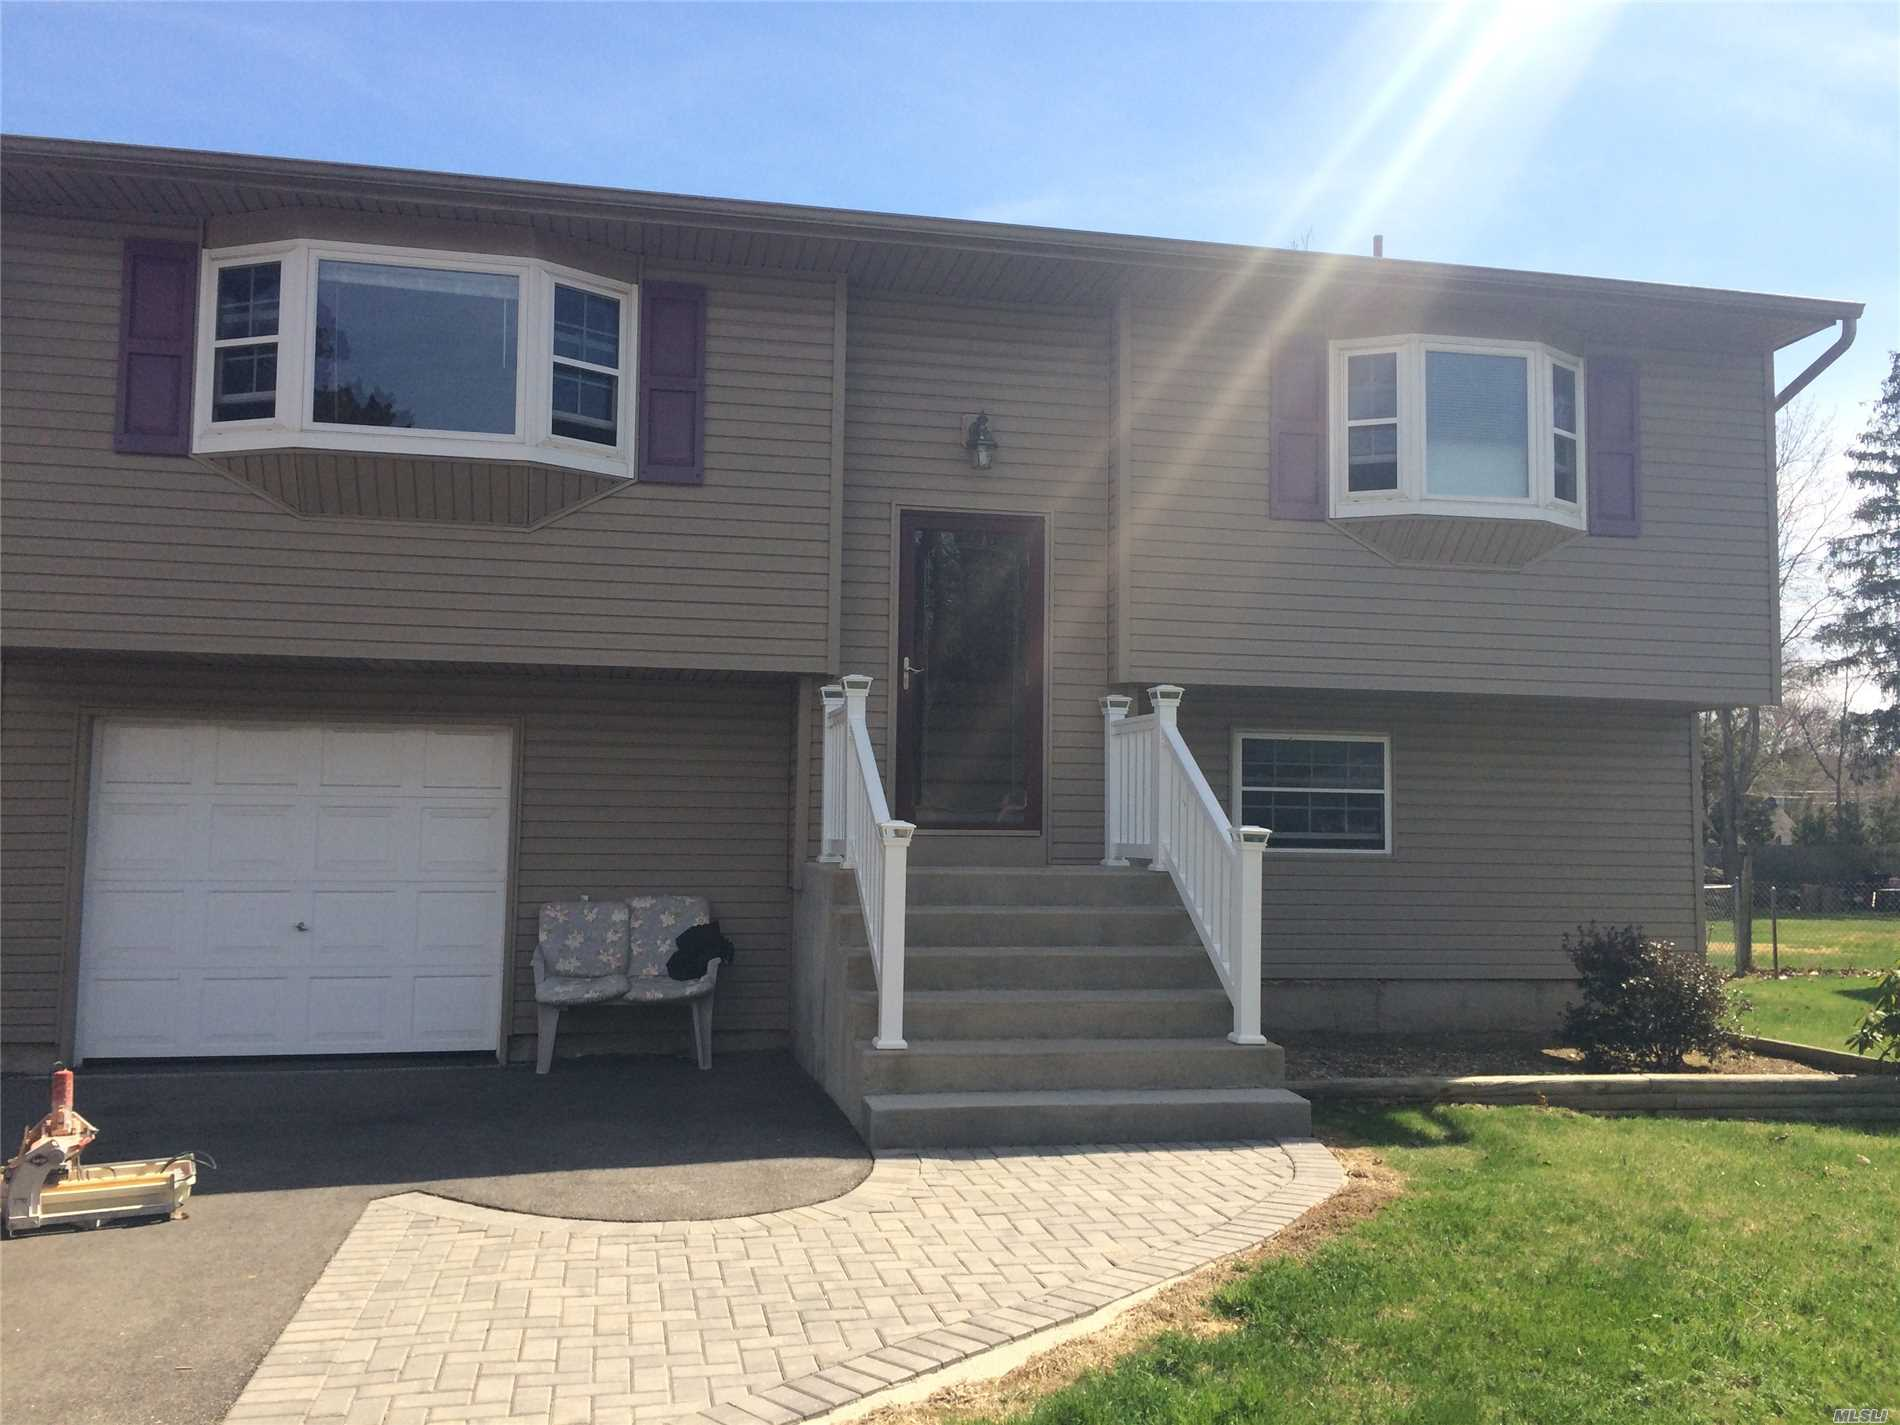 Great Hi-Ranch That Will Offer Brand New Kitchen, Young Bathrooms, Washer / Dryer, Large Rooms, Garage. Freshly Painted.